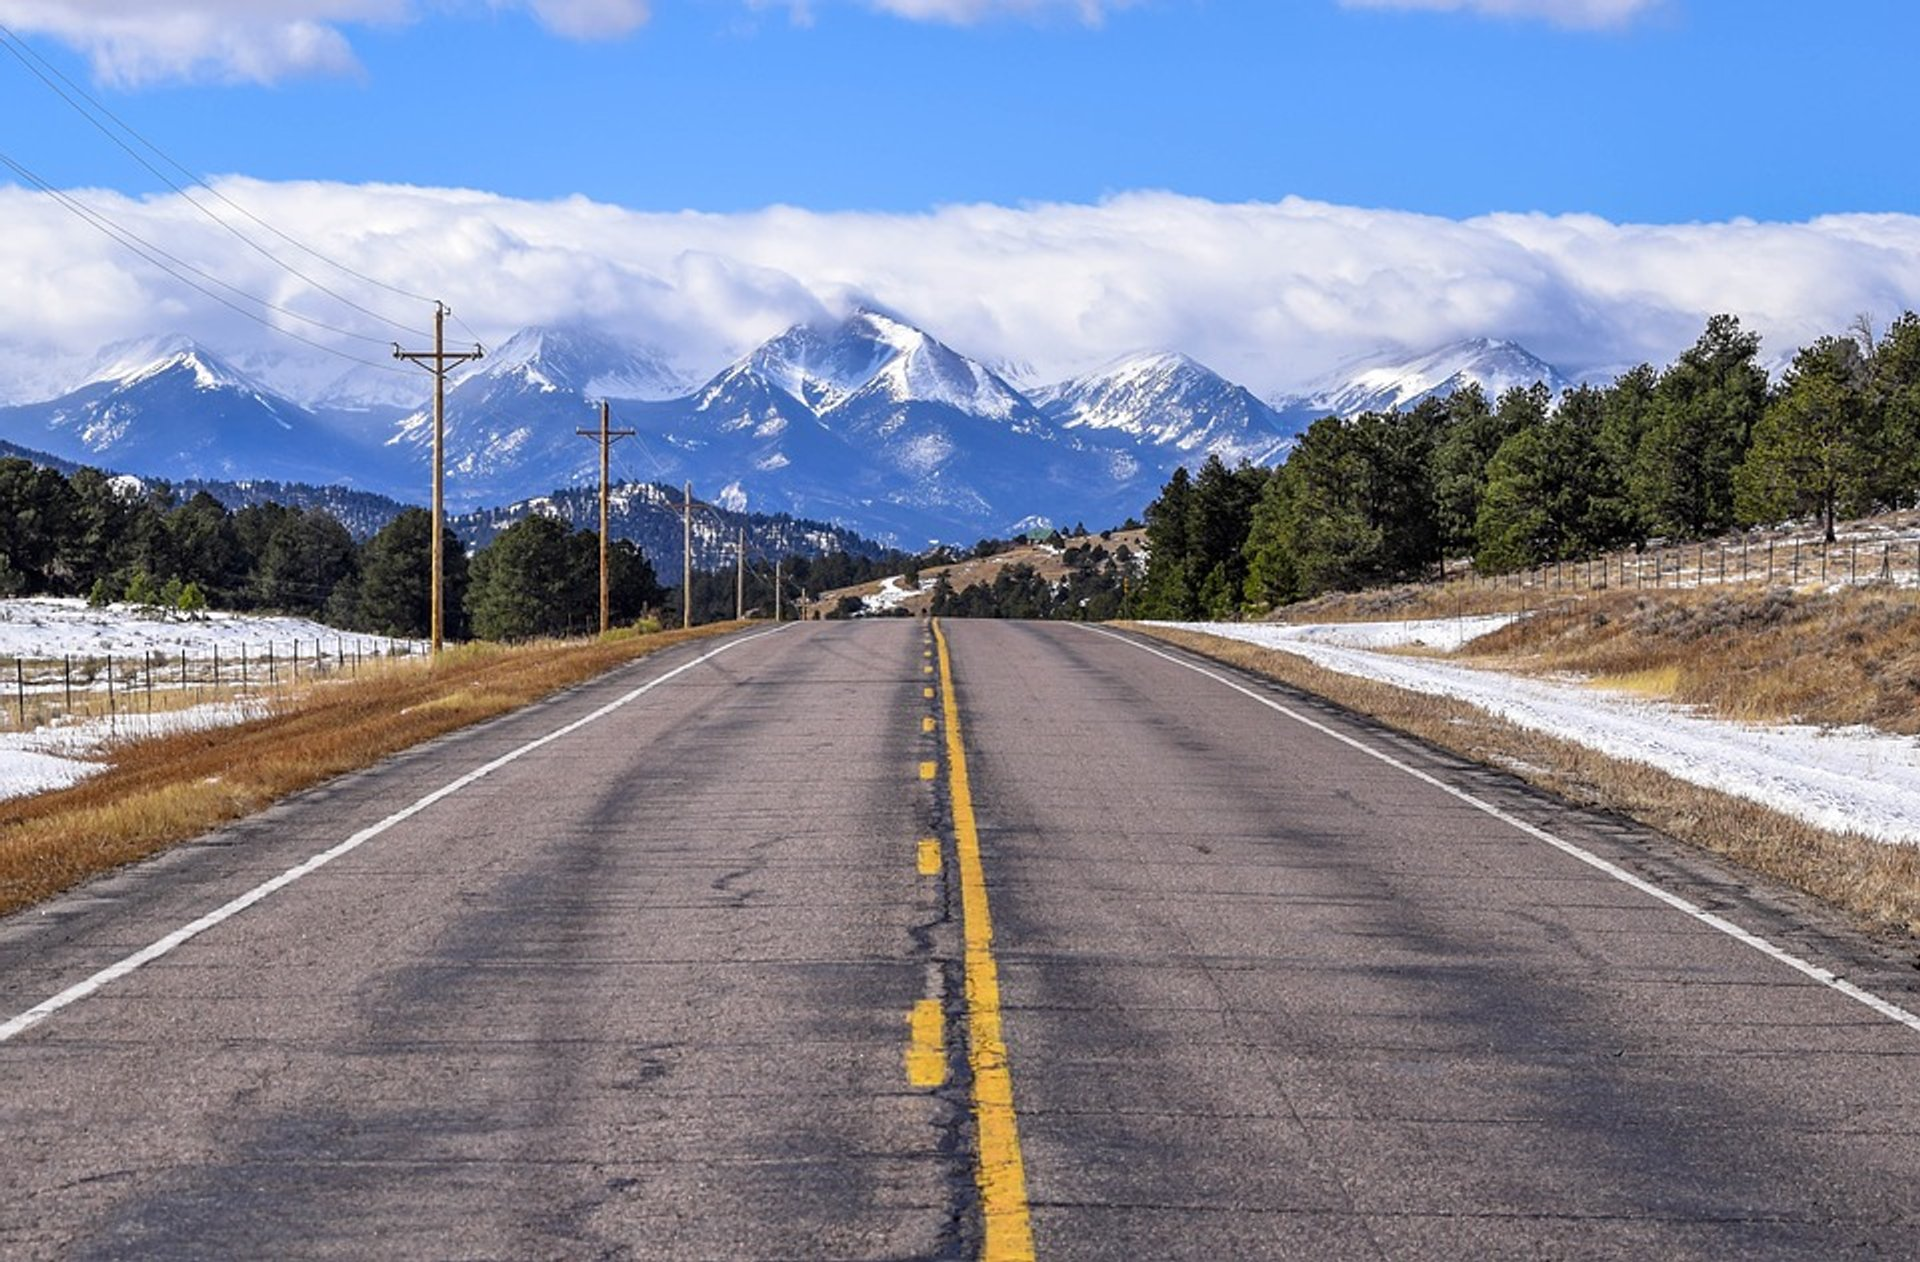 Road in Colorado with the Rockies view 2020